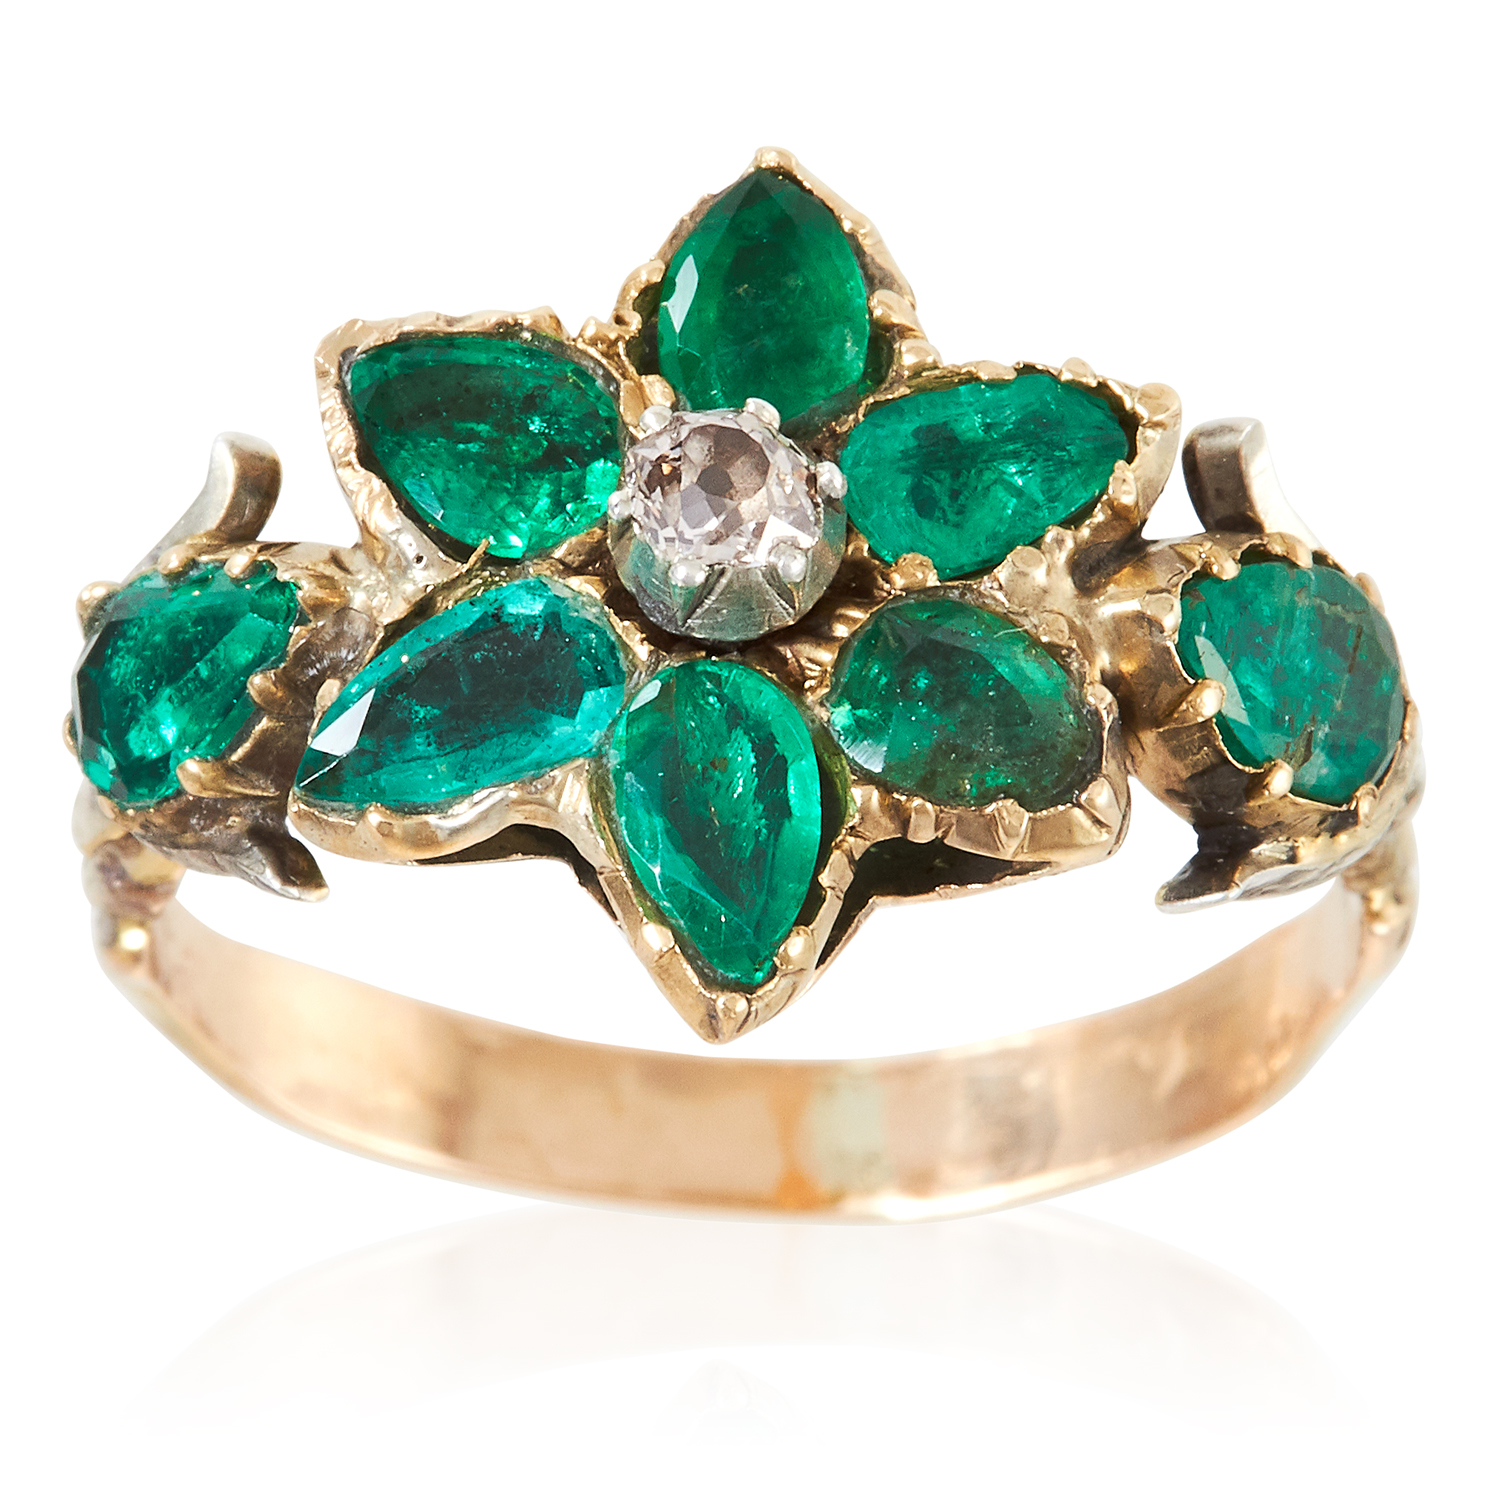 AN ANTIQUE EMERALD AND DIAMOND RING, 19TH CENTURY in high carat yellow gold, the floral motif